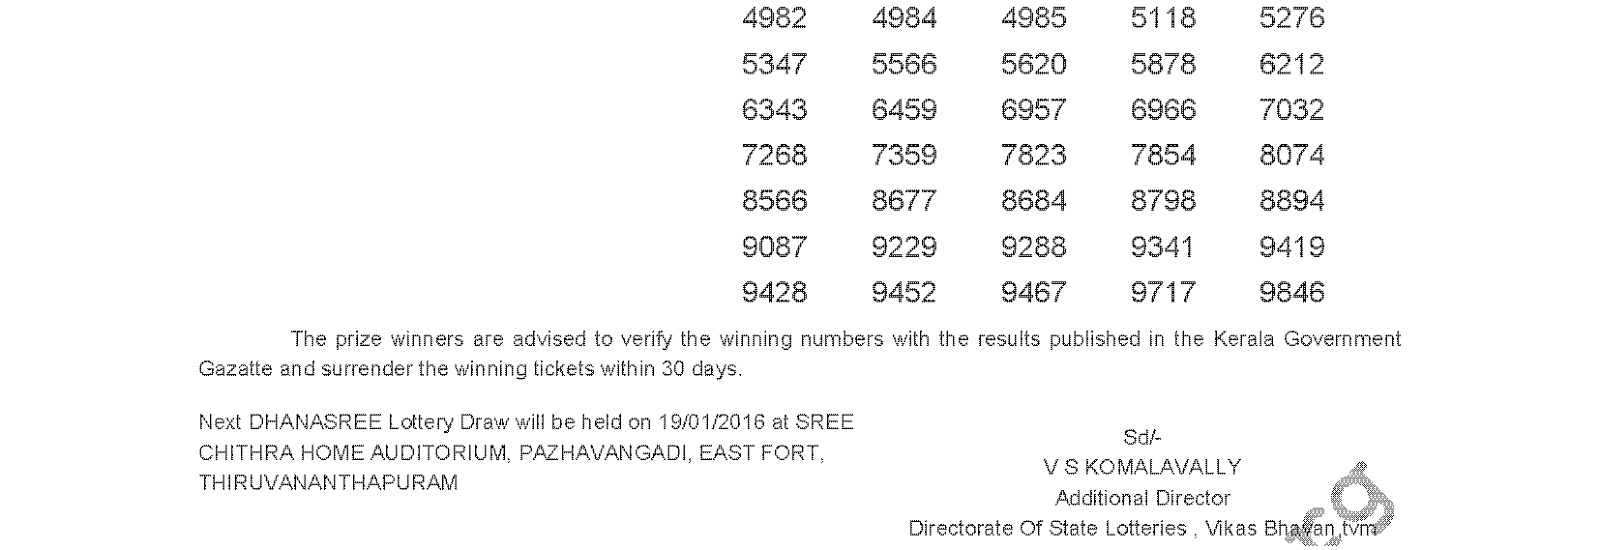 DHANASREE Lottery DS 220 Result 12-01-2016